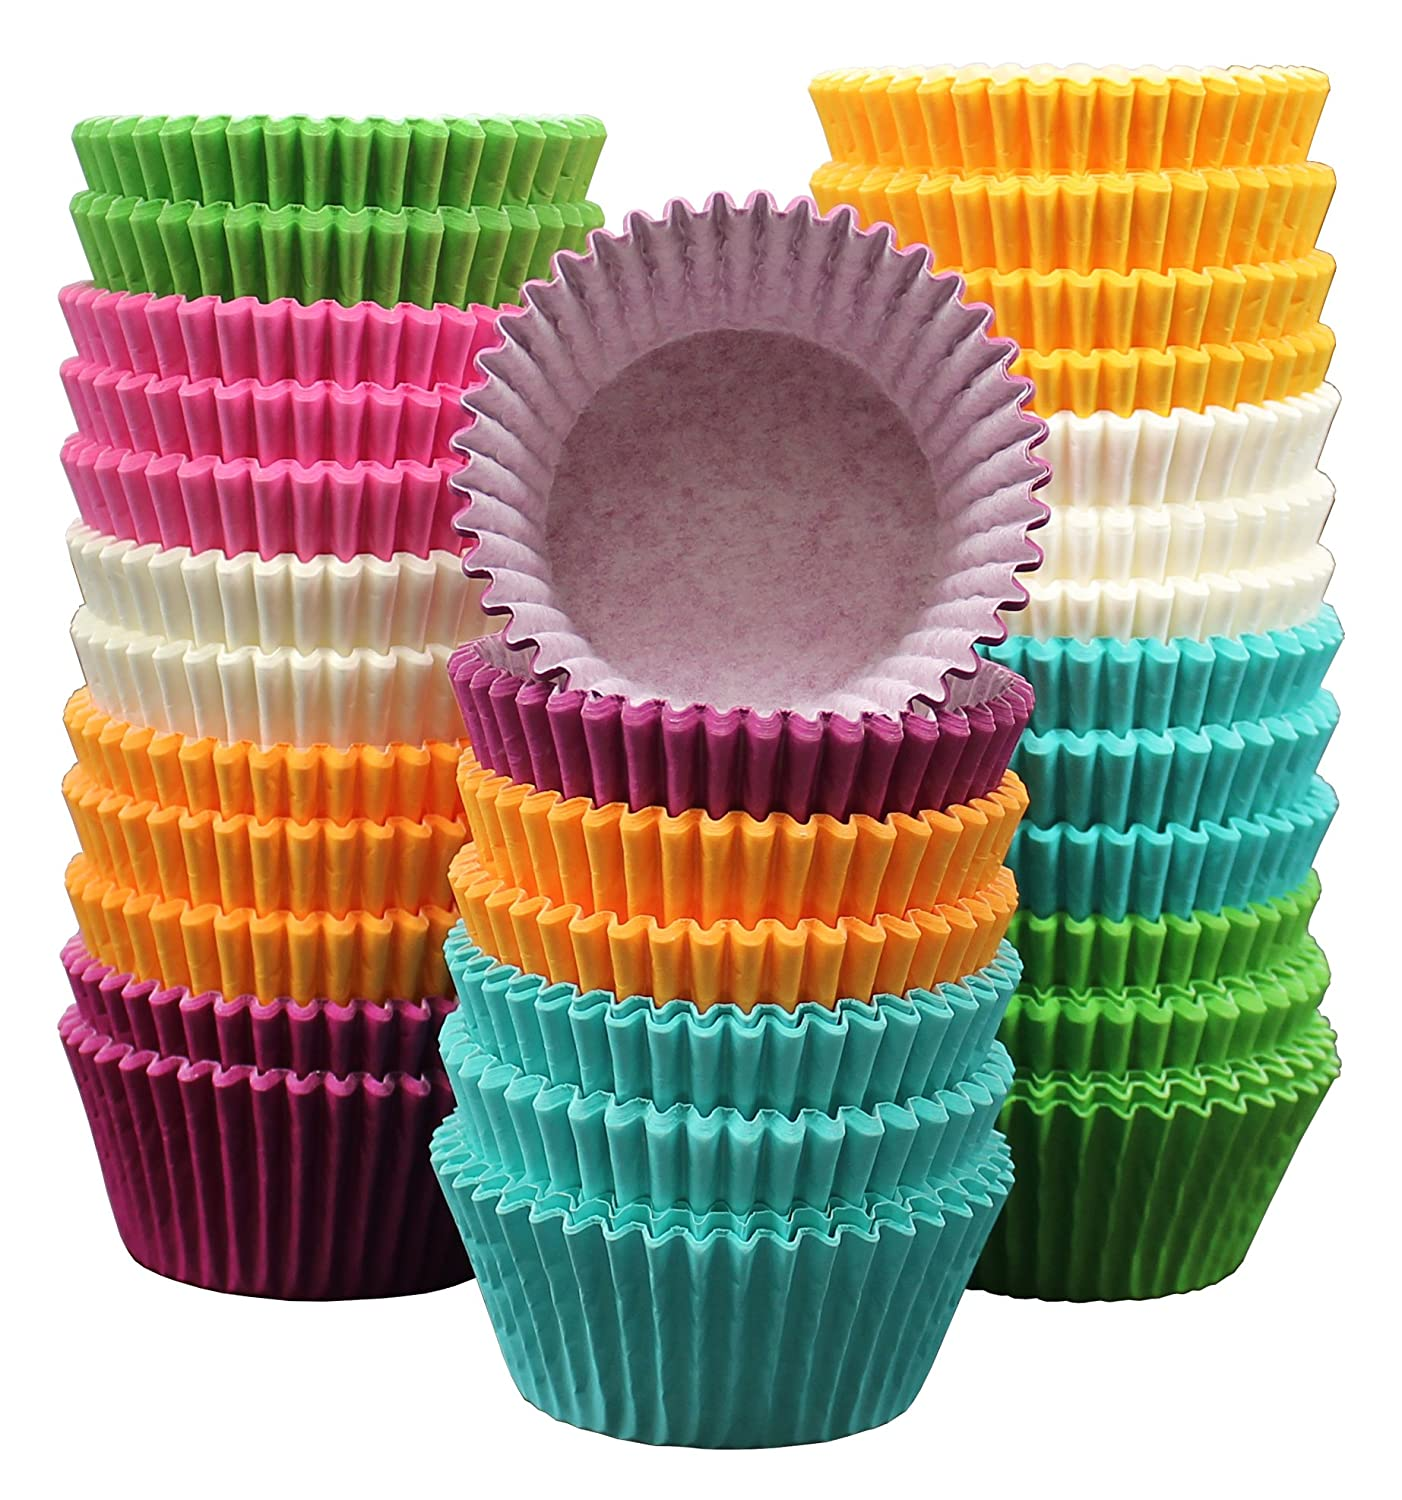 "MontoPack 300-Pack Holiday Party Rainbow Paper Baking Cups - 1.97"" No Smell, Safe Food Grade Inks and Paper Grease Proof Cupcake Liners Perfect Cups for Cake Balls, Muffins, Cupcakes, and Candies"